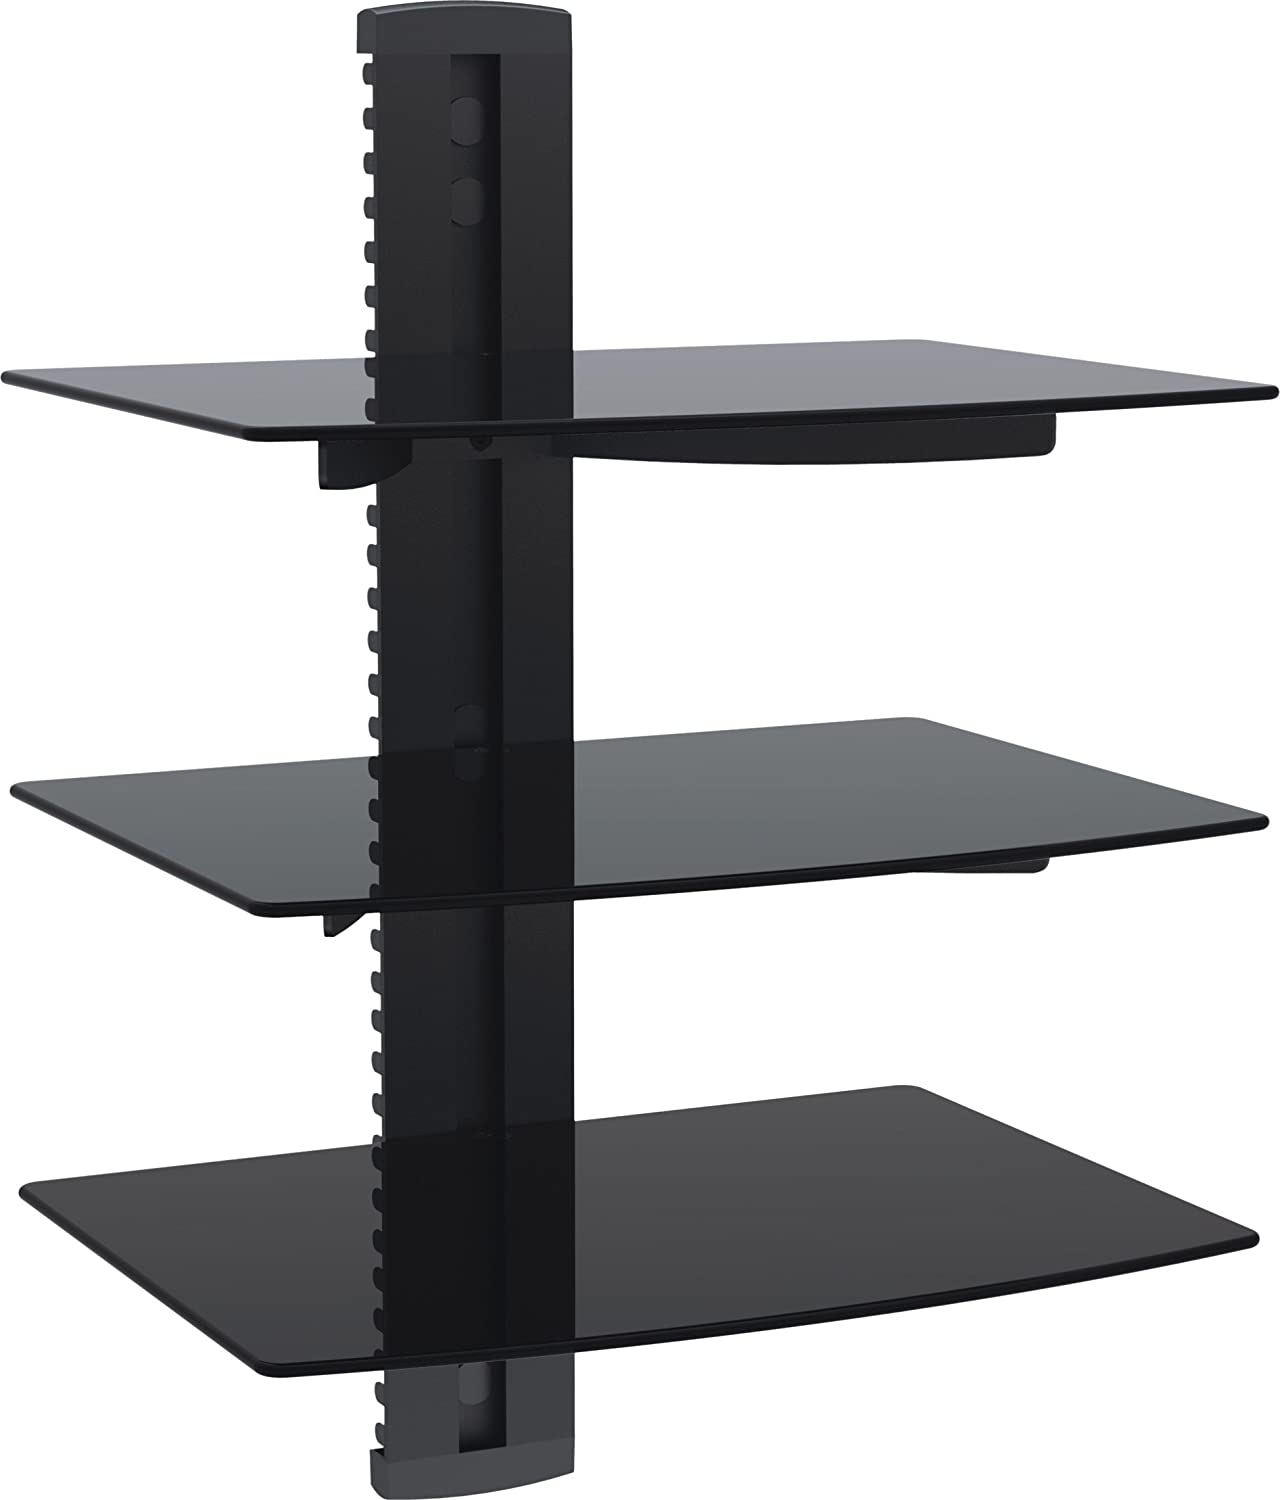 shelves itm to dvd component mark glass console shelf floating wall mount stand av